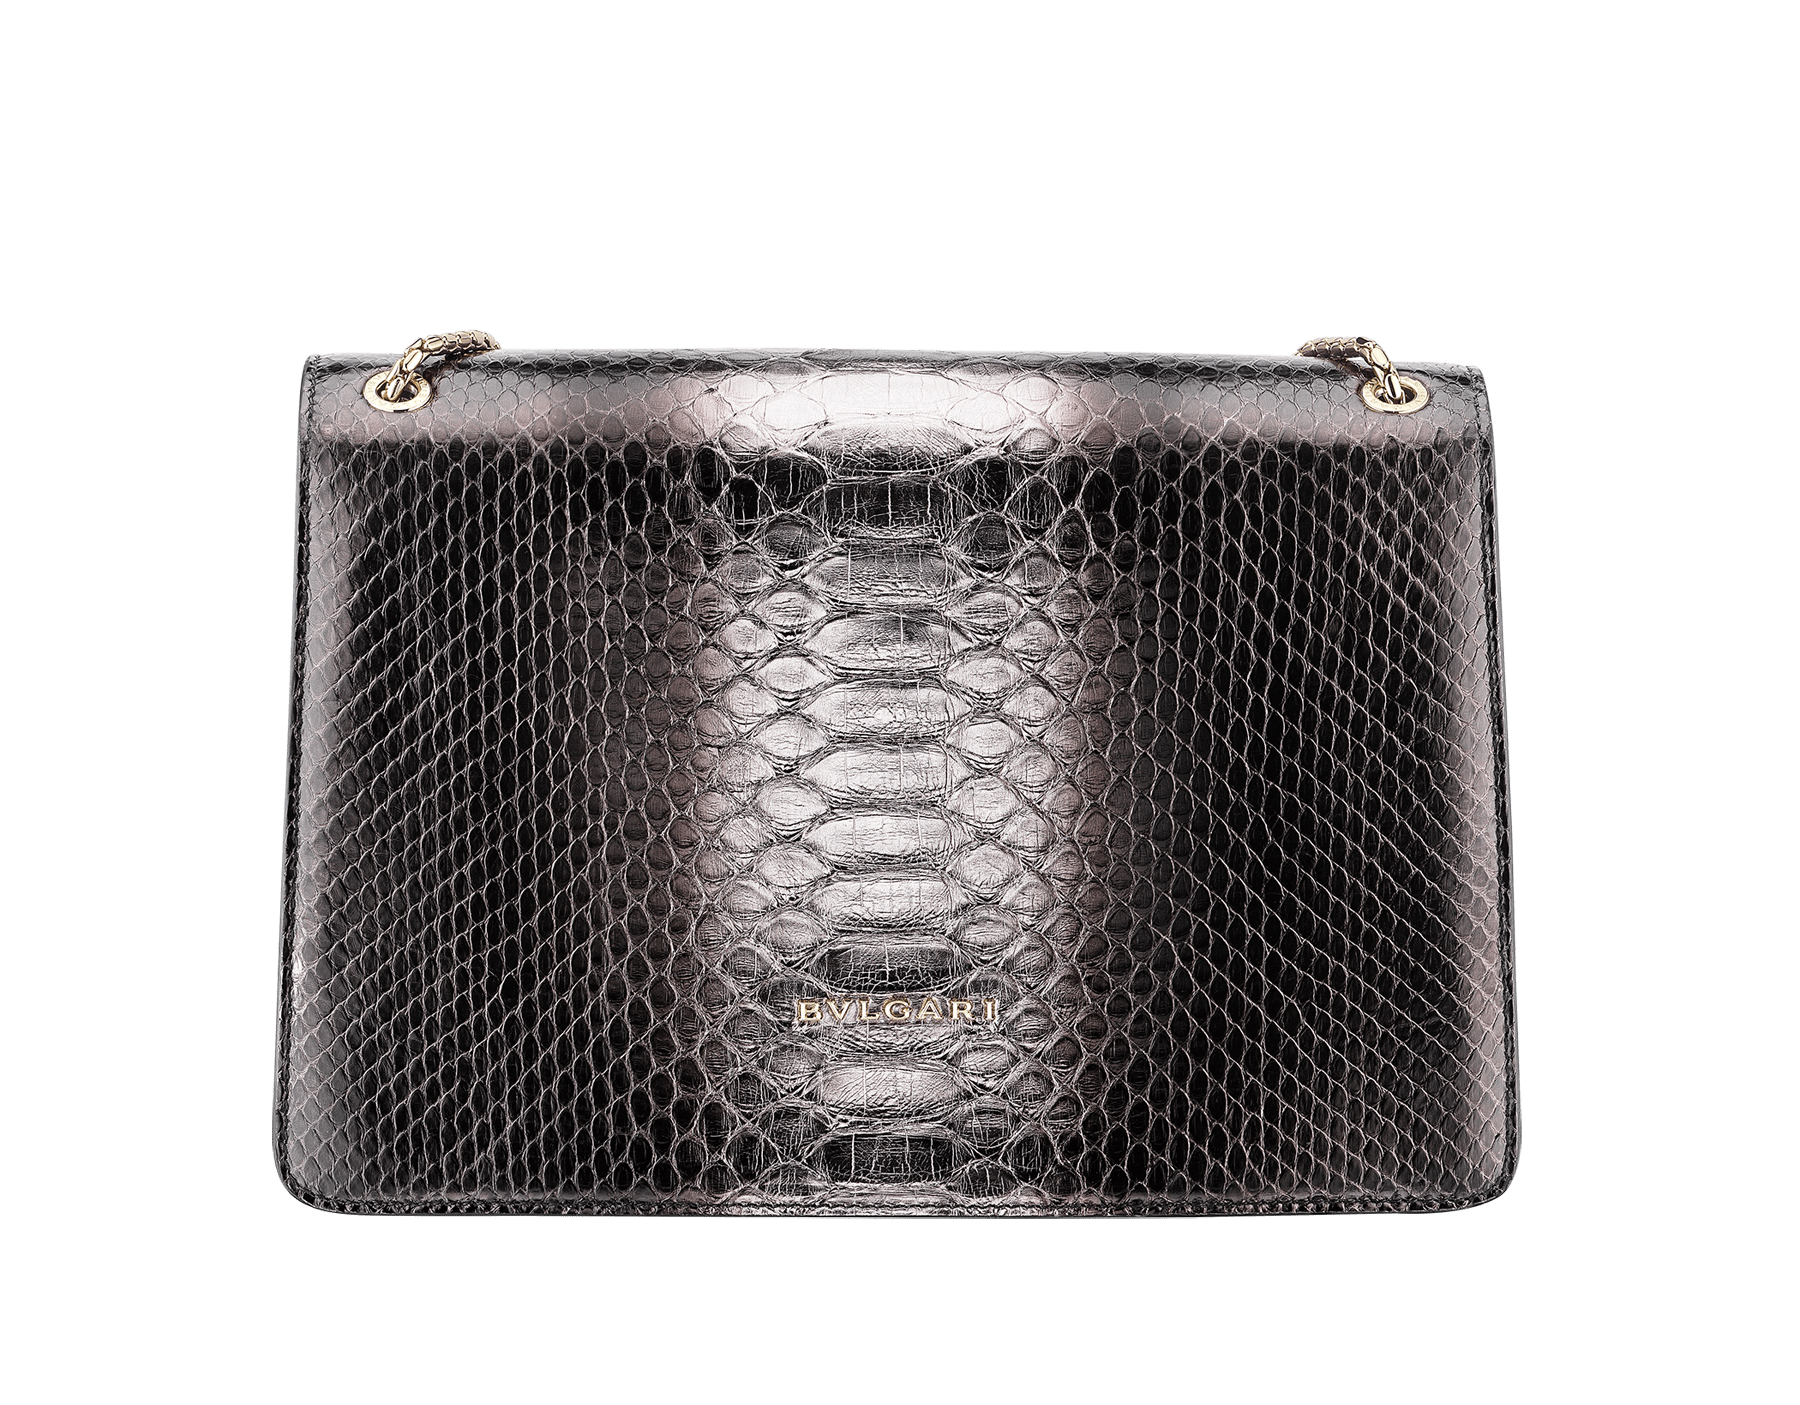 Serpenti Forever shoulder bag in black and silver shaded python skin. Snakehead closure in light gold plated brass decorated with black enamel, and black onyx eyes. 288494 image 3